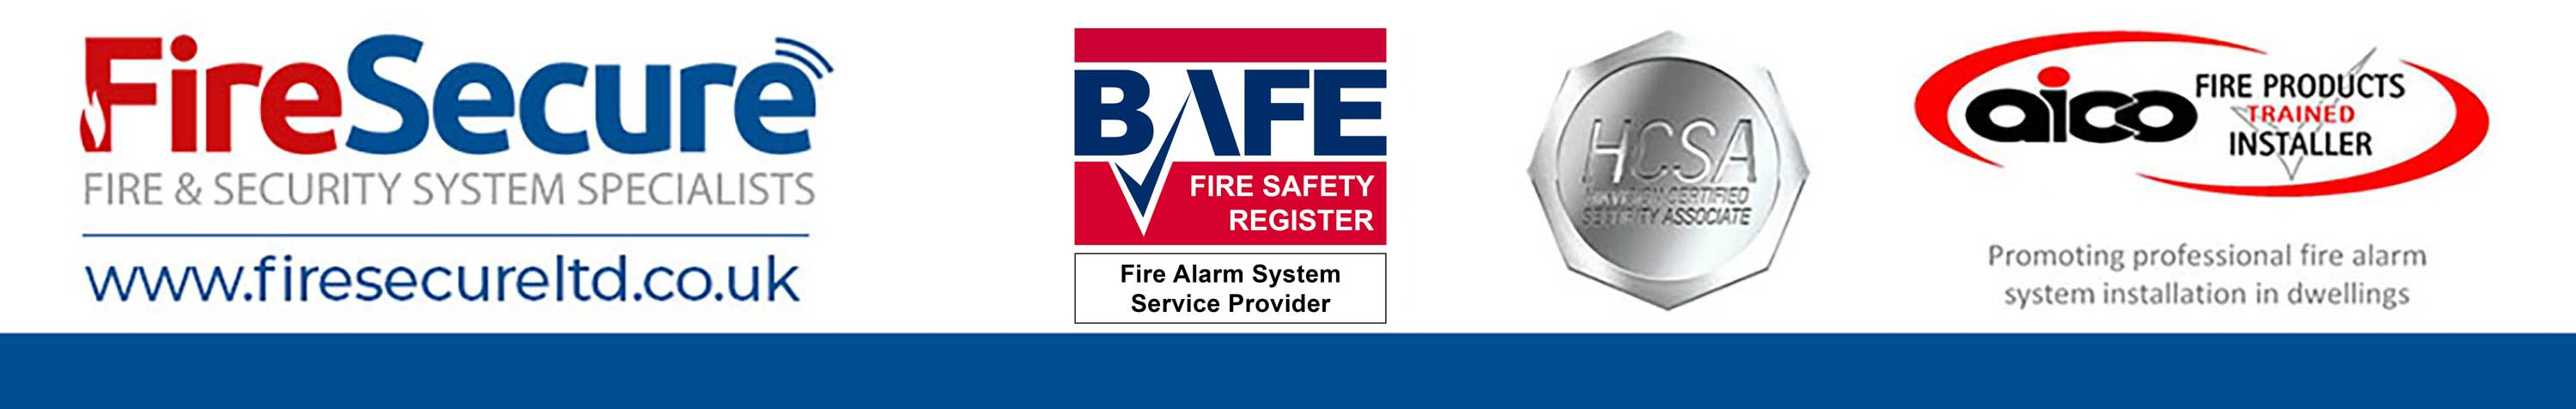 Fire Secure accreditation badges BAFE aico and Hikvision